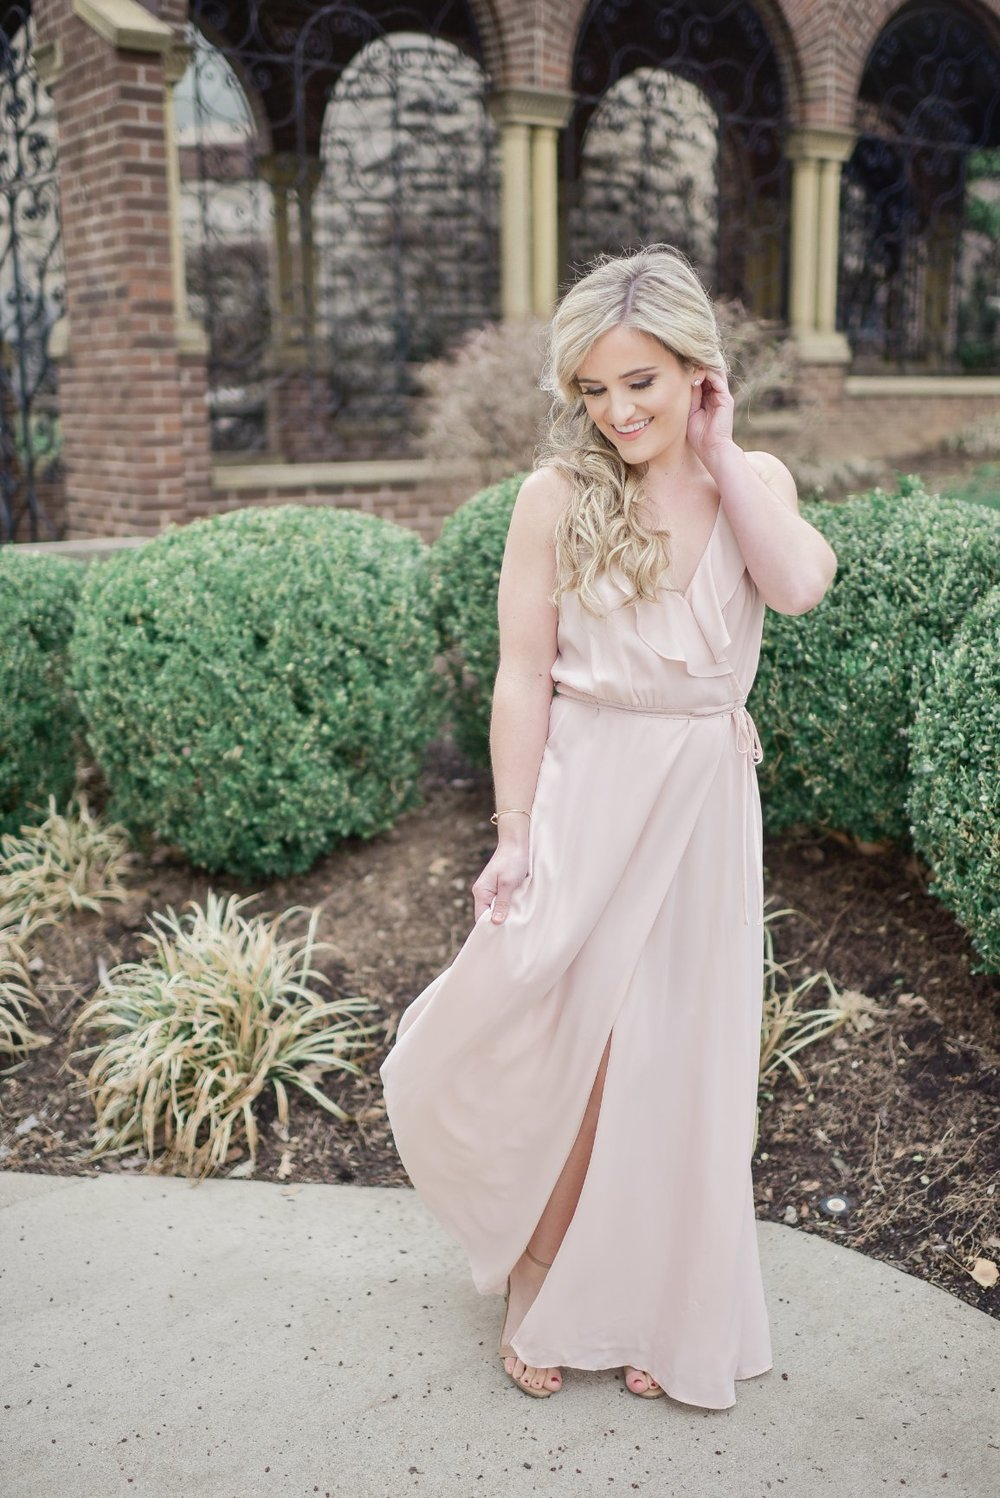 Wedding-Day-Hair-and-Makeup-Questions-Answered-1.jpg